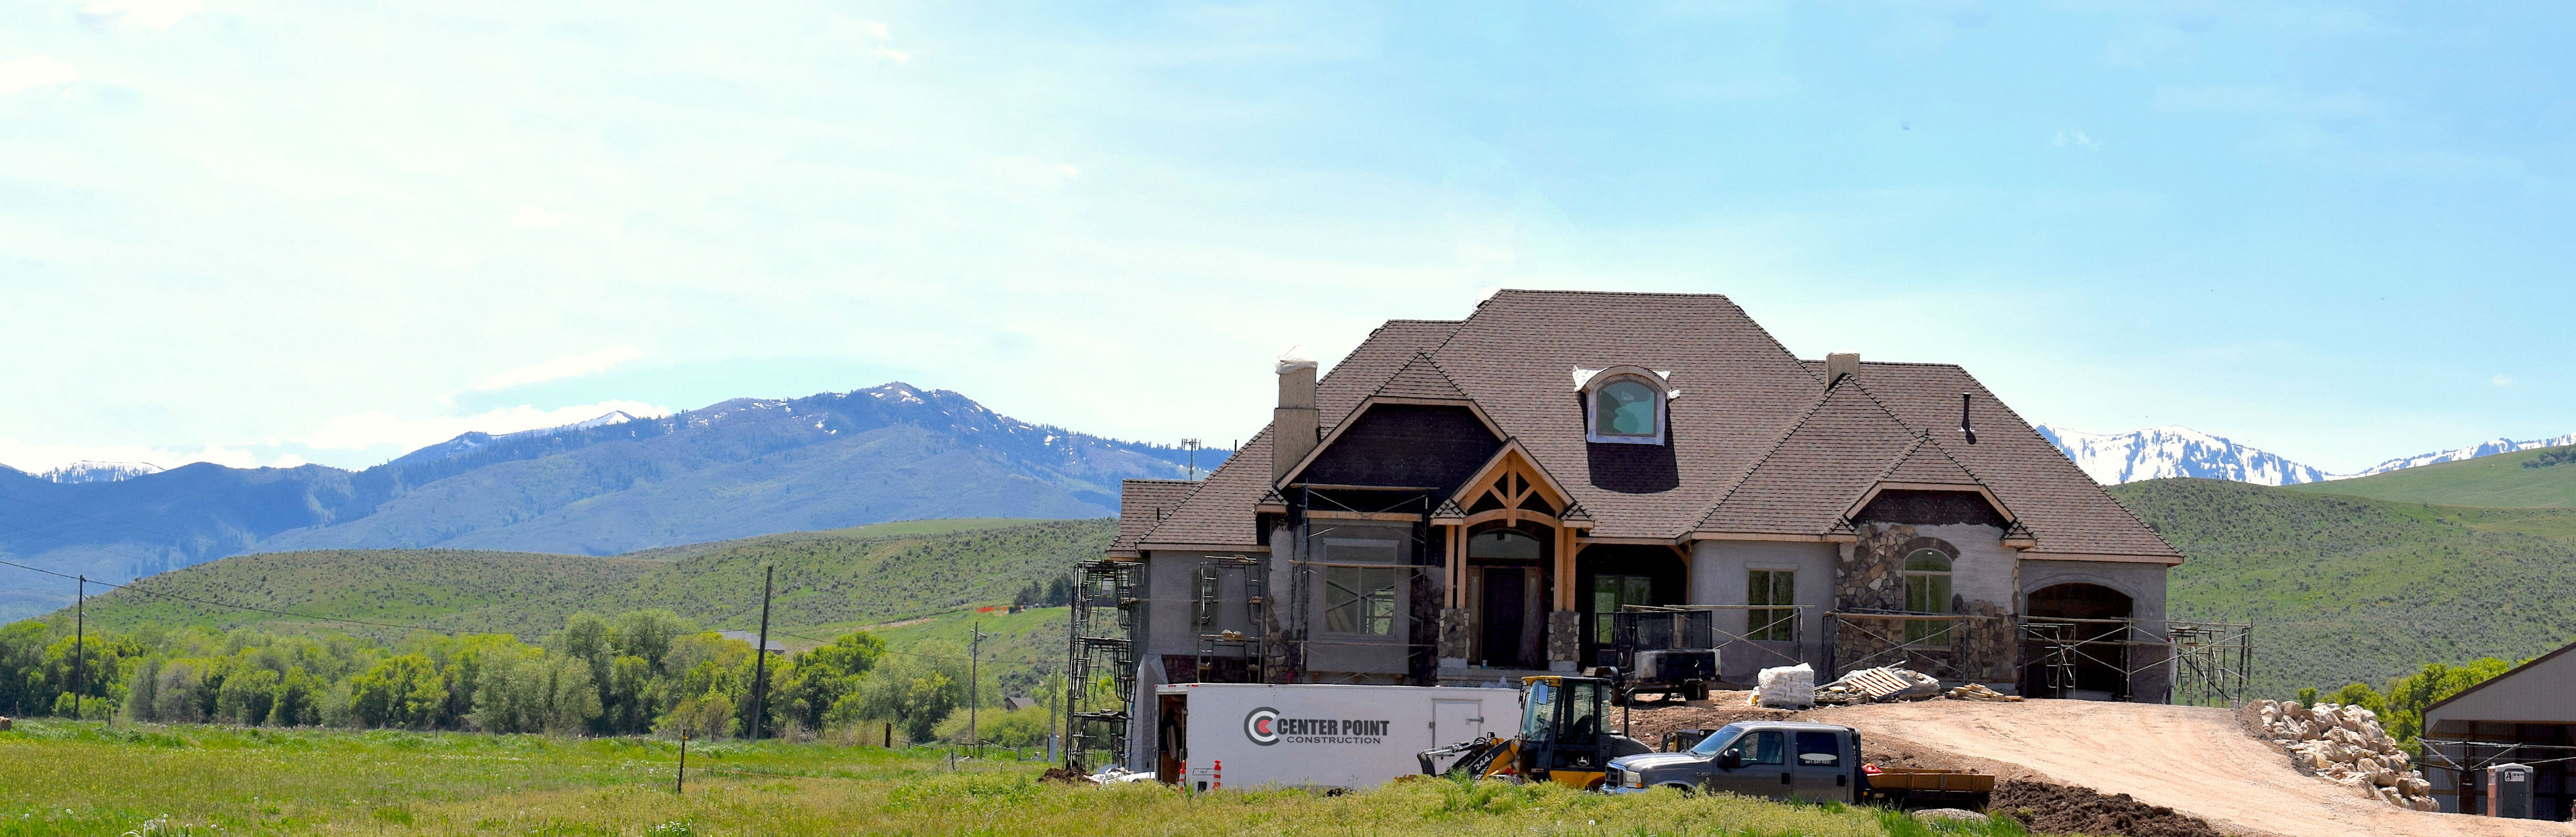 custom home being built by Center Point Construction in Morgan, Utah